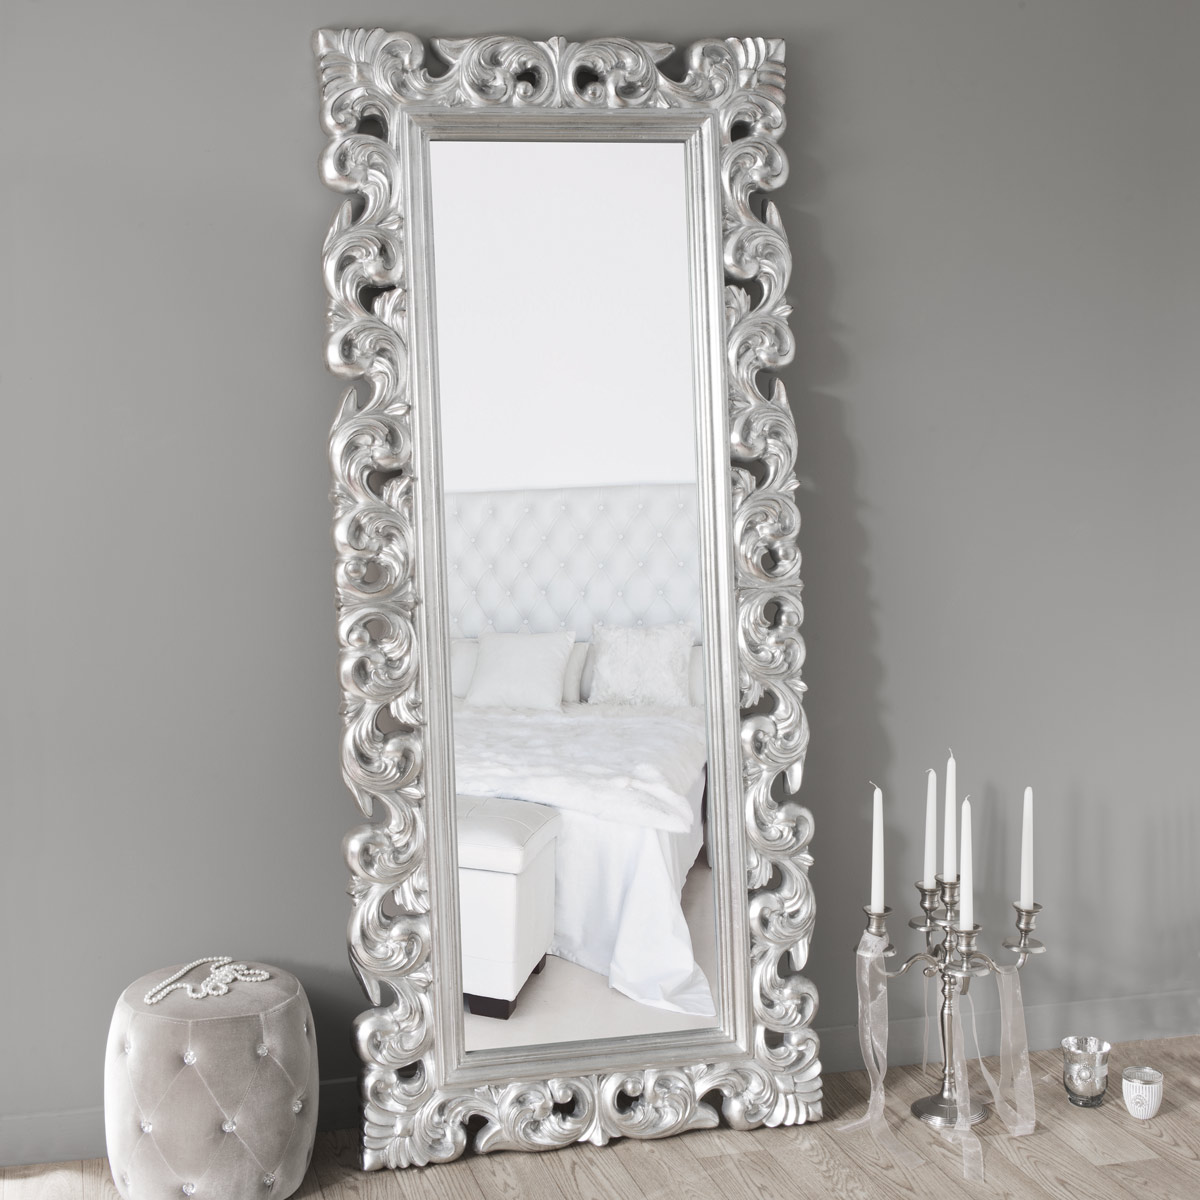 miroir baroque maison du monde id es de d coration. Black Bedroom Furniture Sets. Home Design Ideas